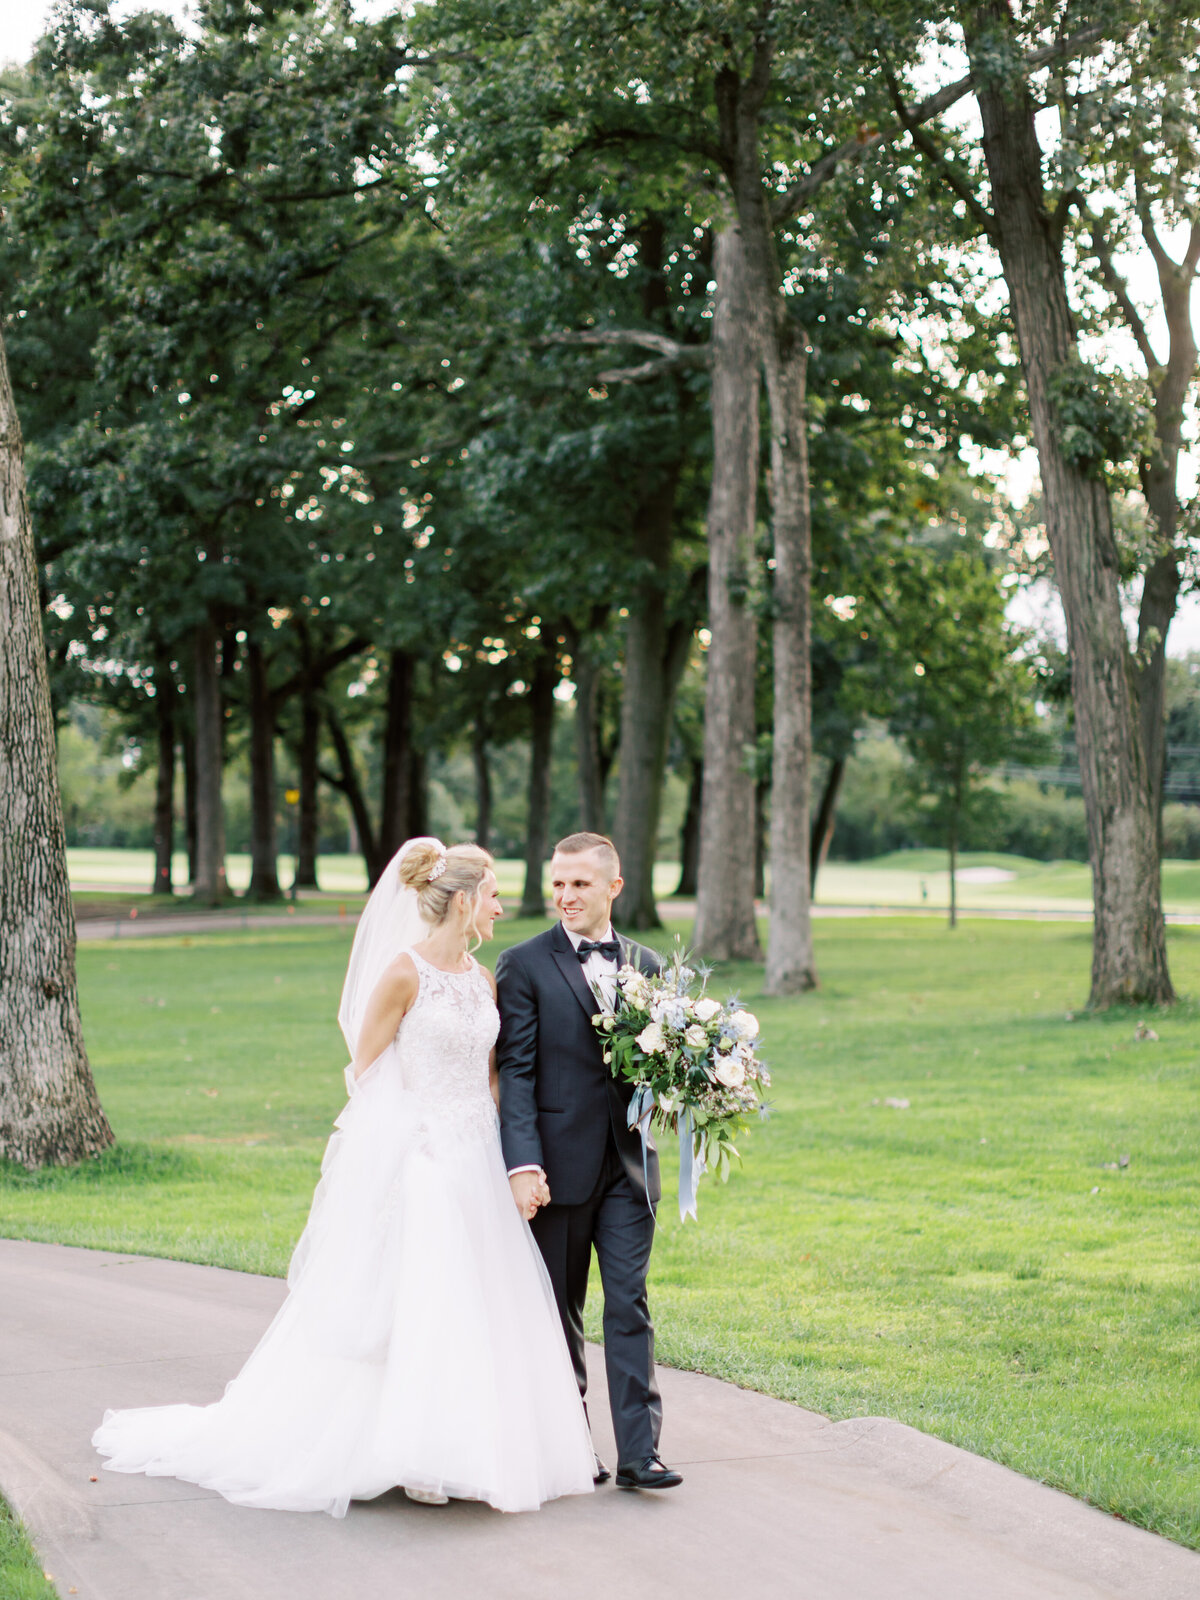 TiffaneyChildsPhotography-ChicagoWeddingPhotographer-Caitlin+Devin-MedinahCountryClubWedding-BridalPortraits-67